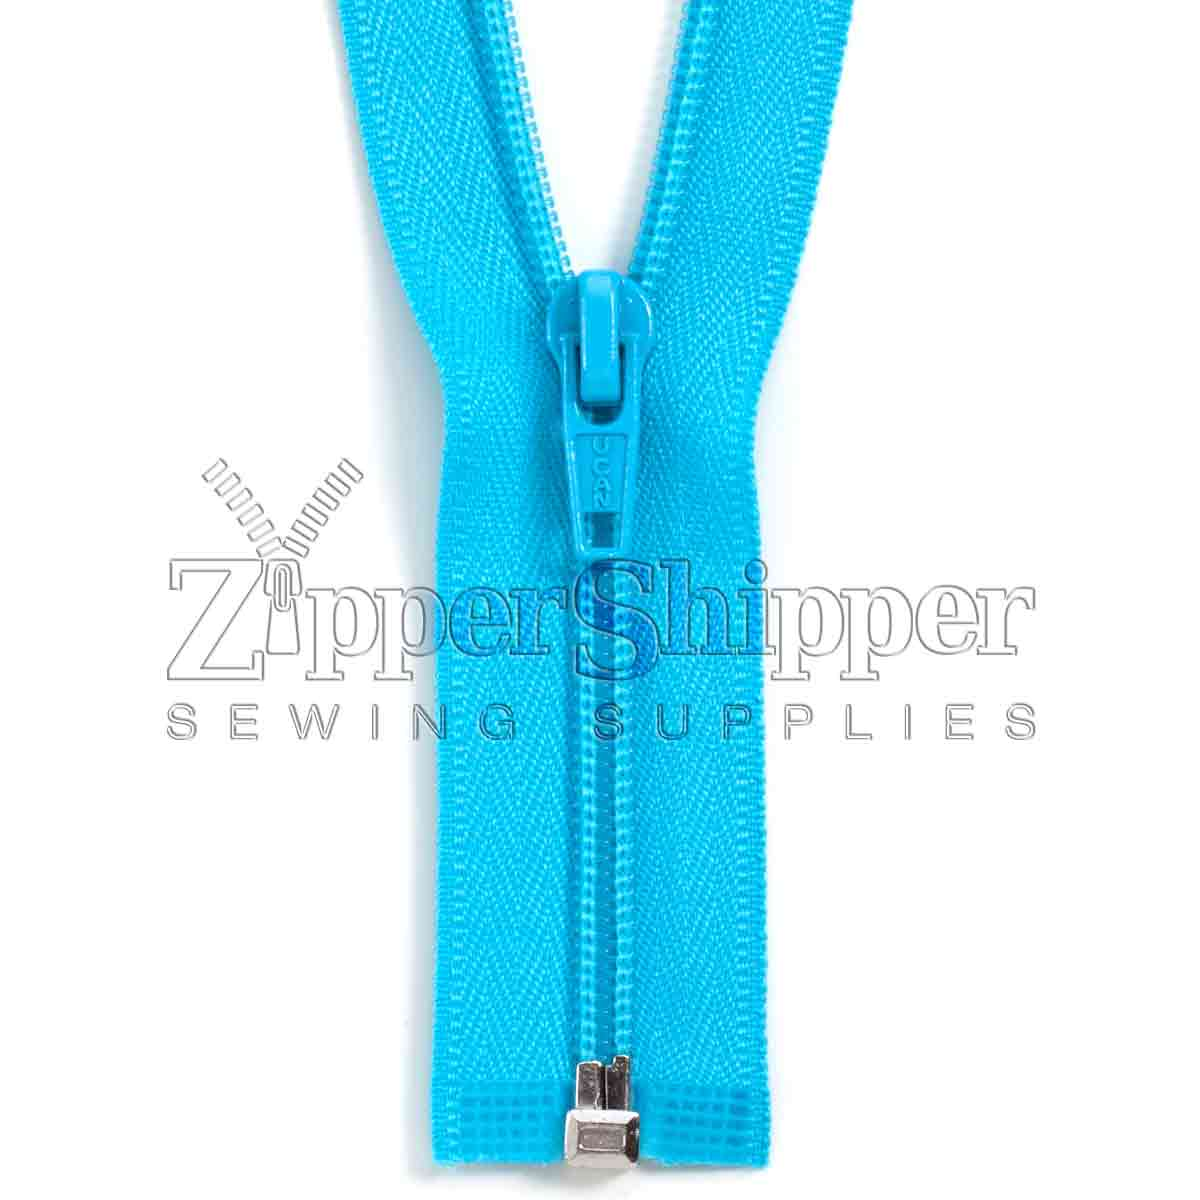 Zipper Slider Replacement & Zipper Part Repair